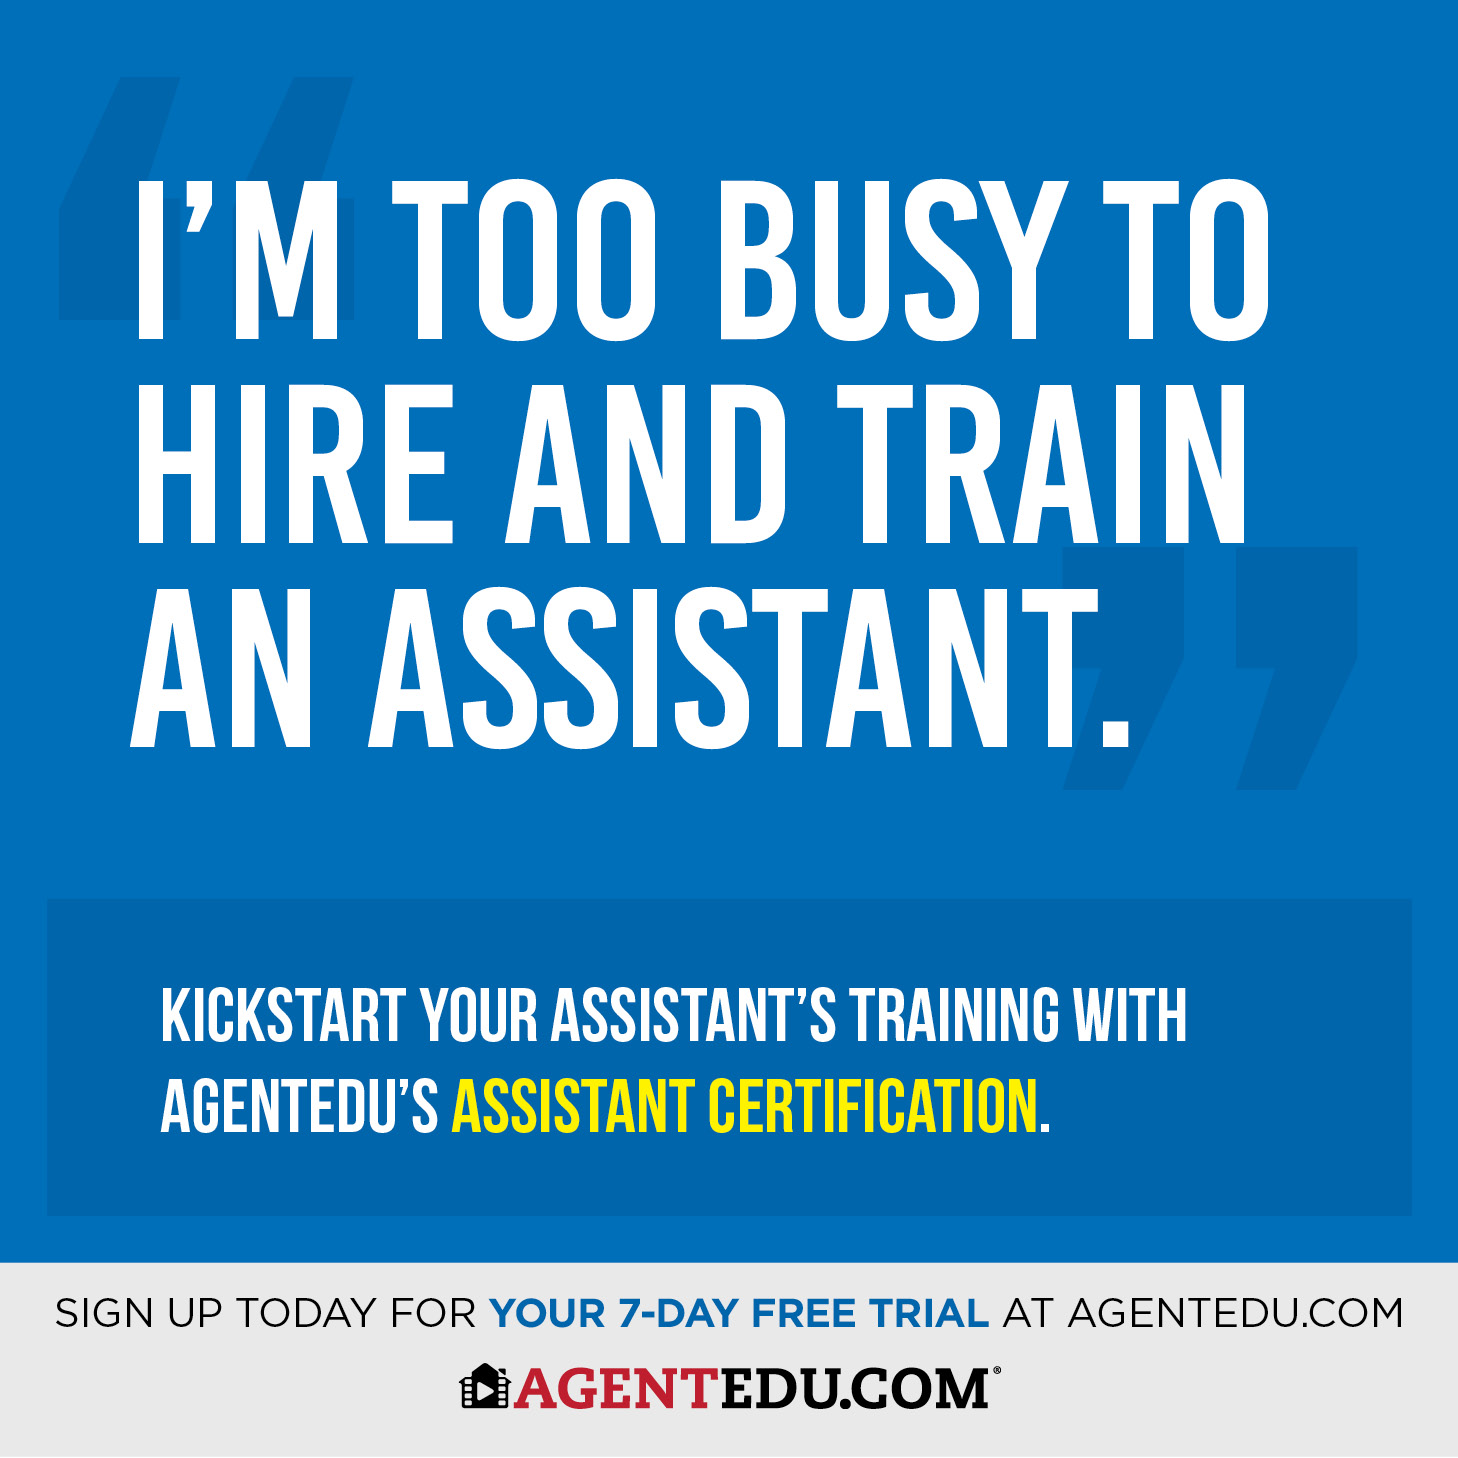 Kickstart your assistant's training with AgetnEDU's Assistant Certification.